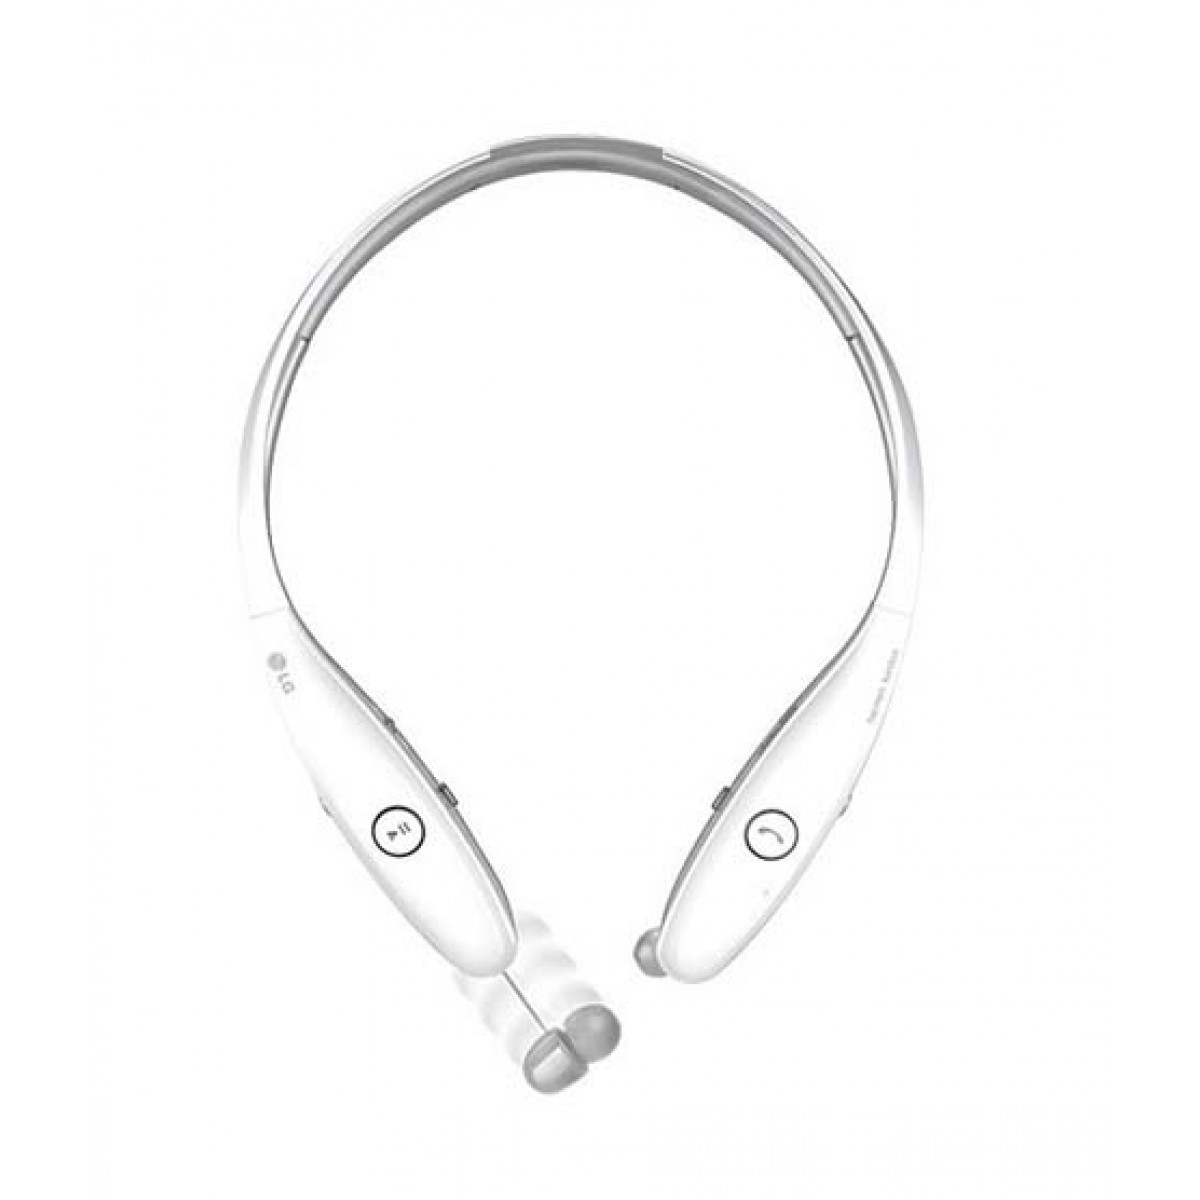 Lg Bluetooth Stereo Headset Price In Pakistan Buy Lg Tone Infinim Bluetooth Stereo Headset White Hbs 900 Ishopping Pk